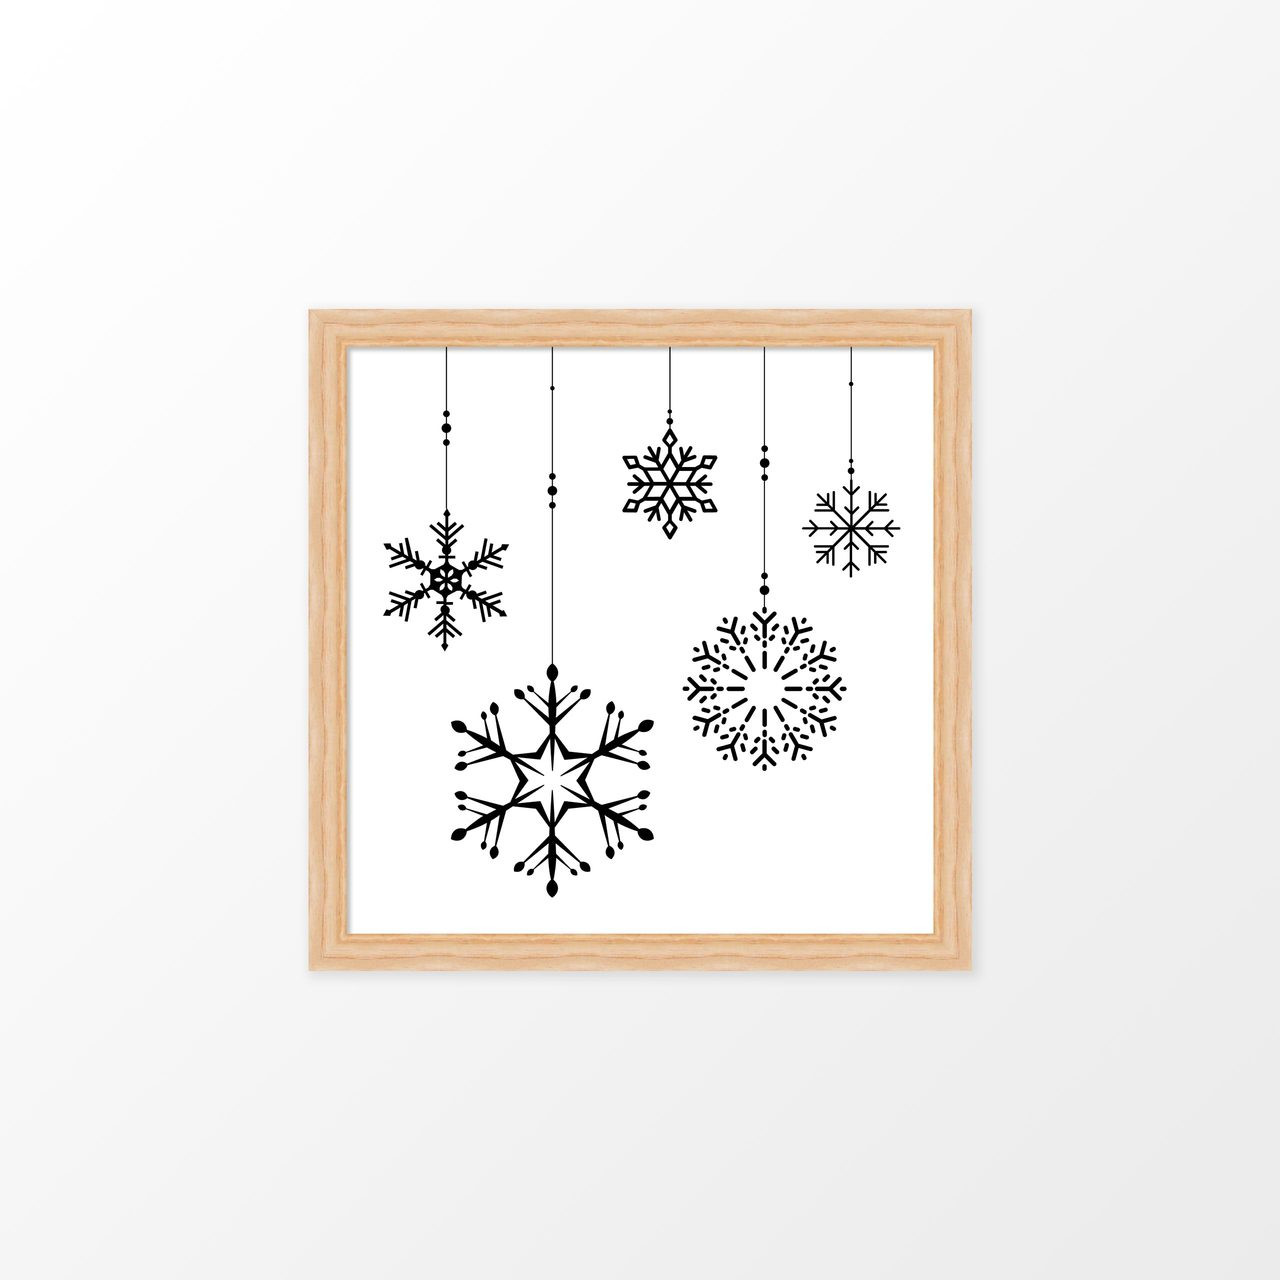 'Ornaments' Christmas Digital Art Print from The Printed Home (Printable)